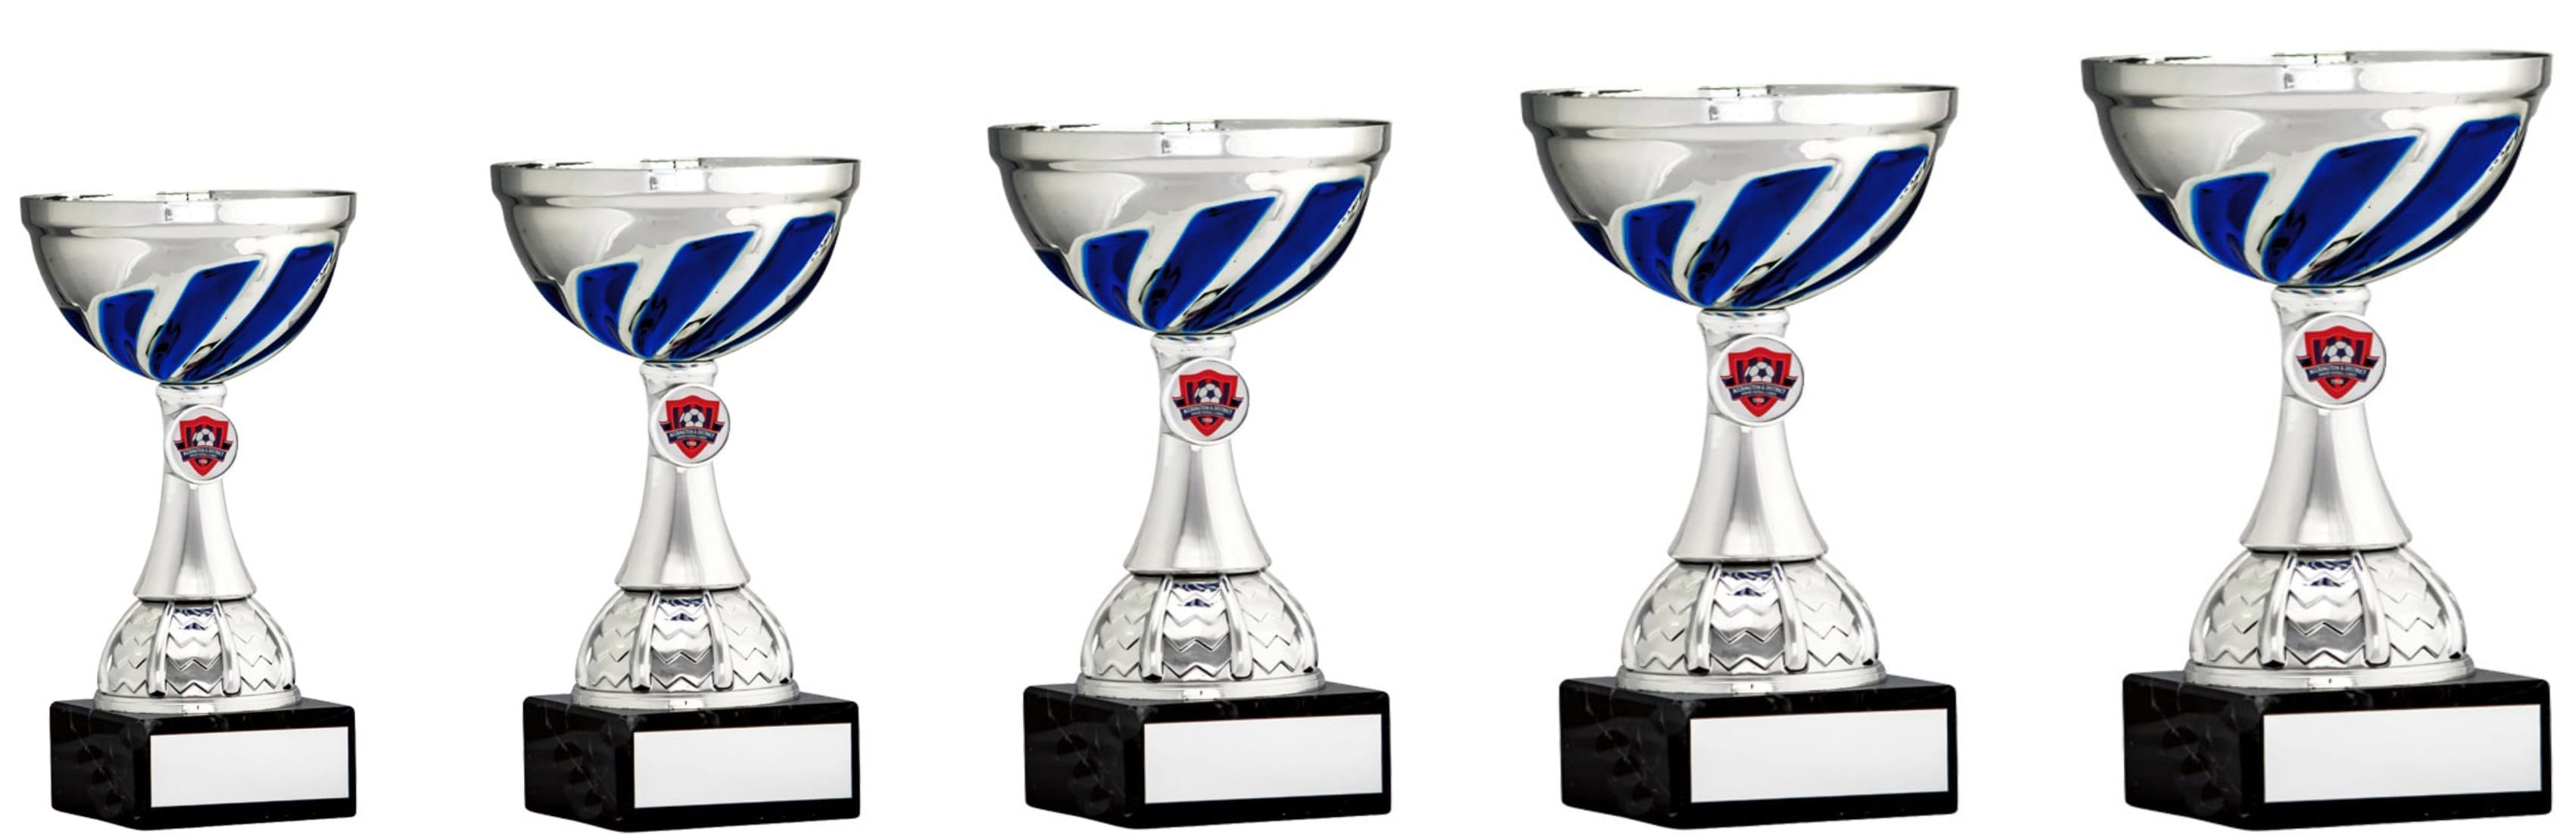 Silver Blue Swirl Cup Trophies 1904 Series